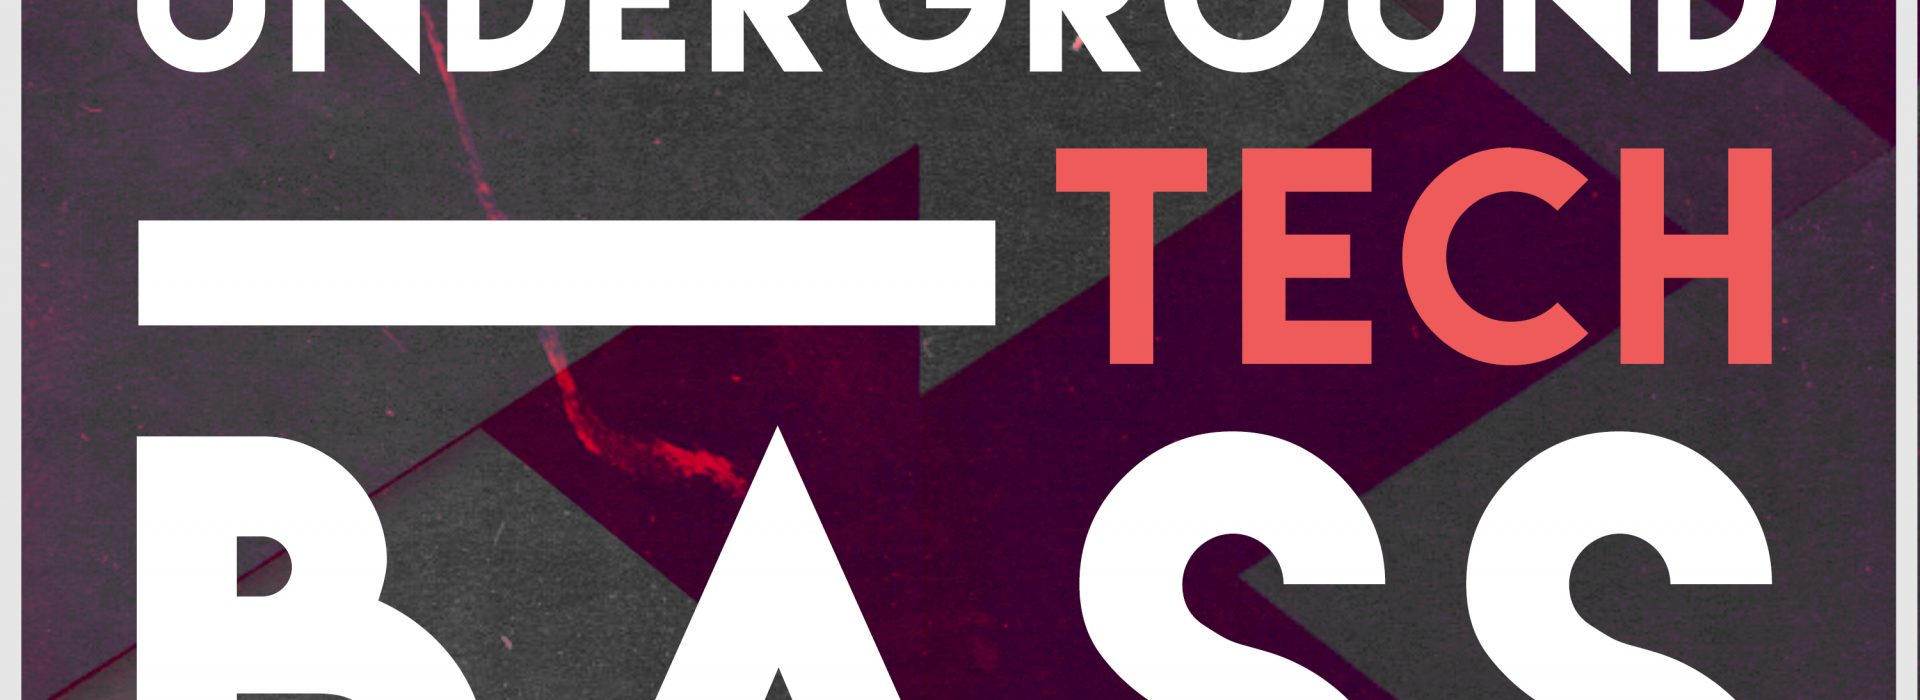 Underground Tech Bass is OUT NOW!!!!